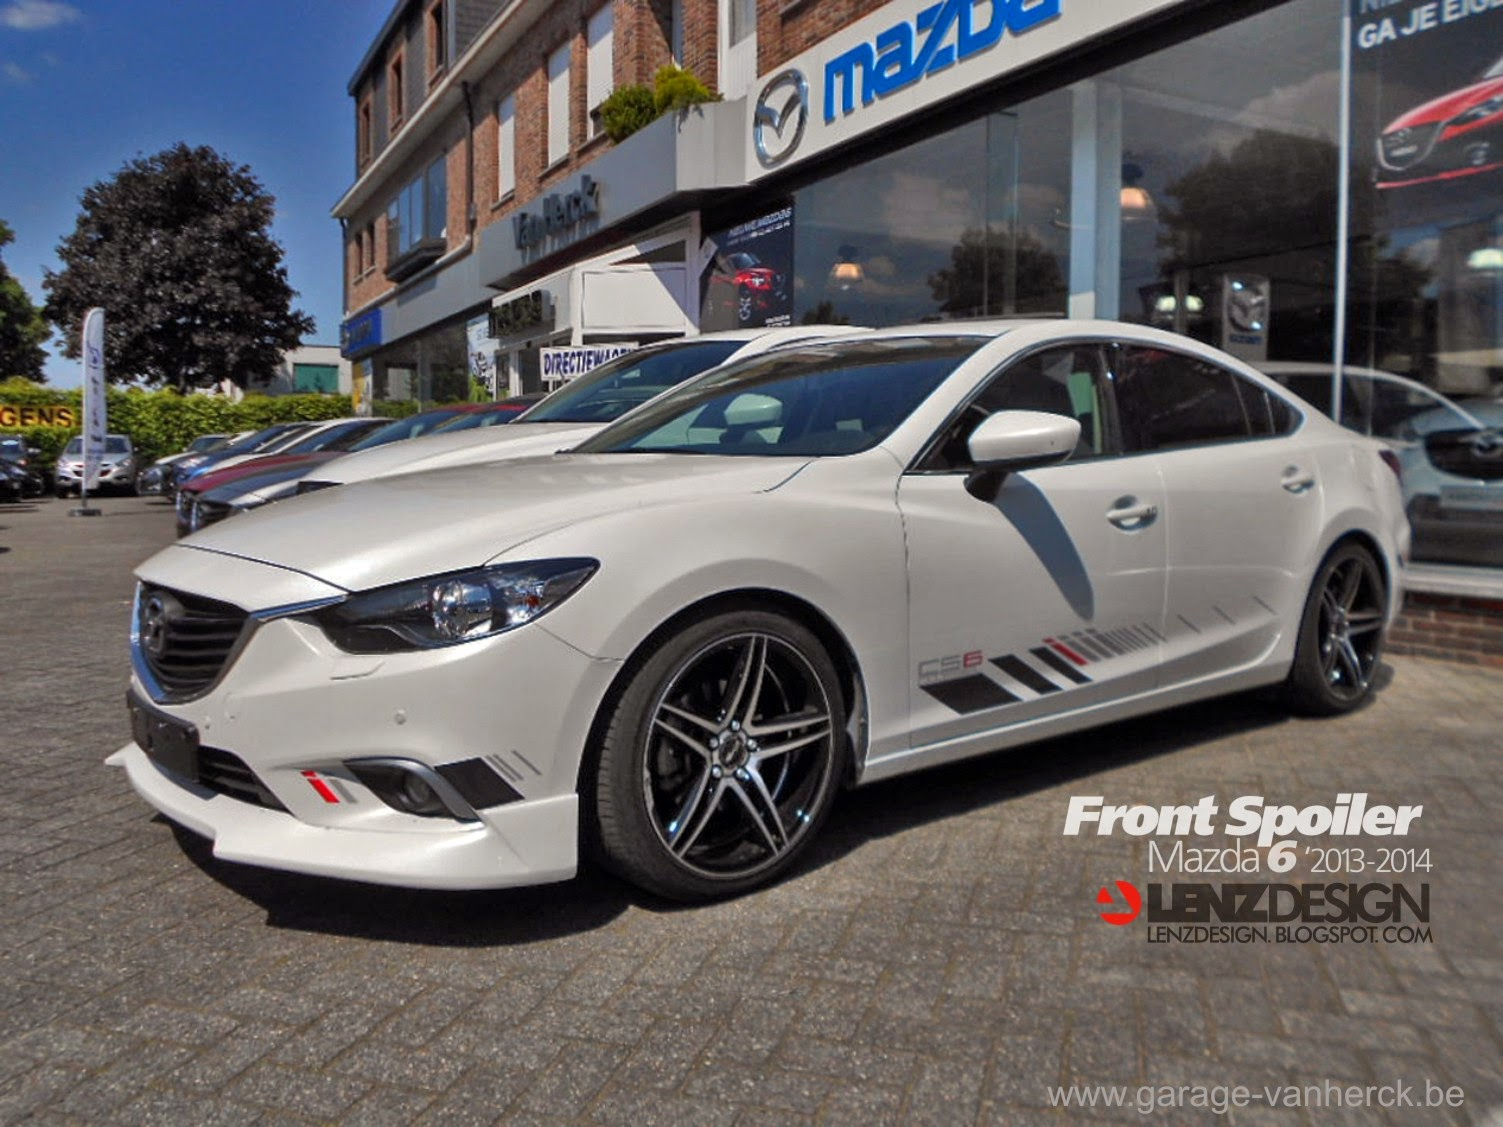 new 3rd generation body kit option mazda 6 forums. Black Bedroom Furniture Sets. Home Design Ideas